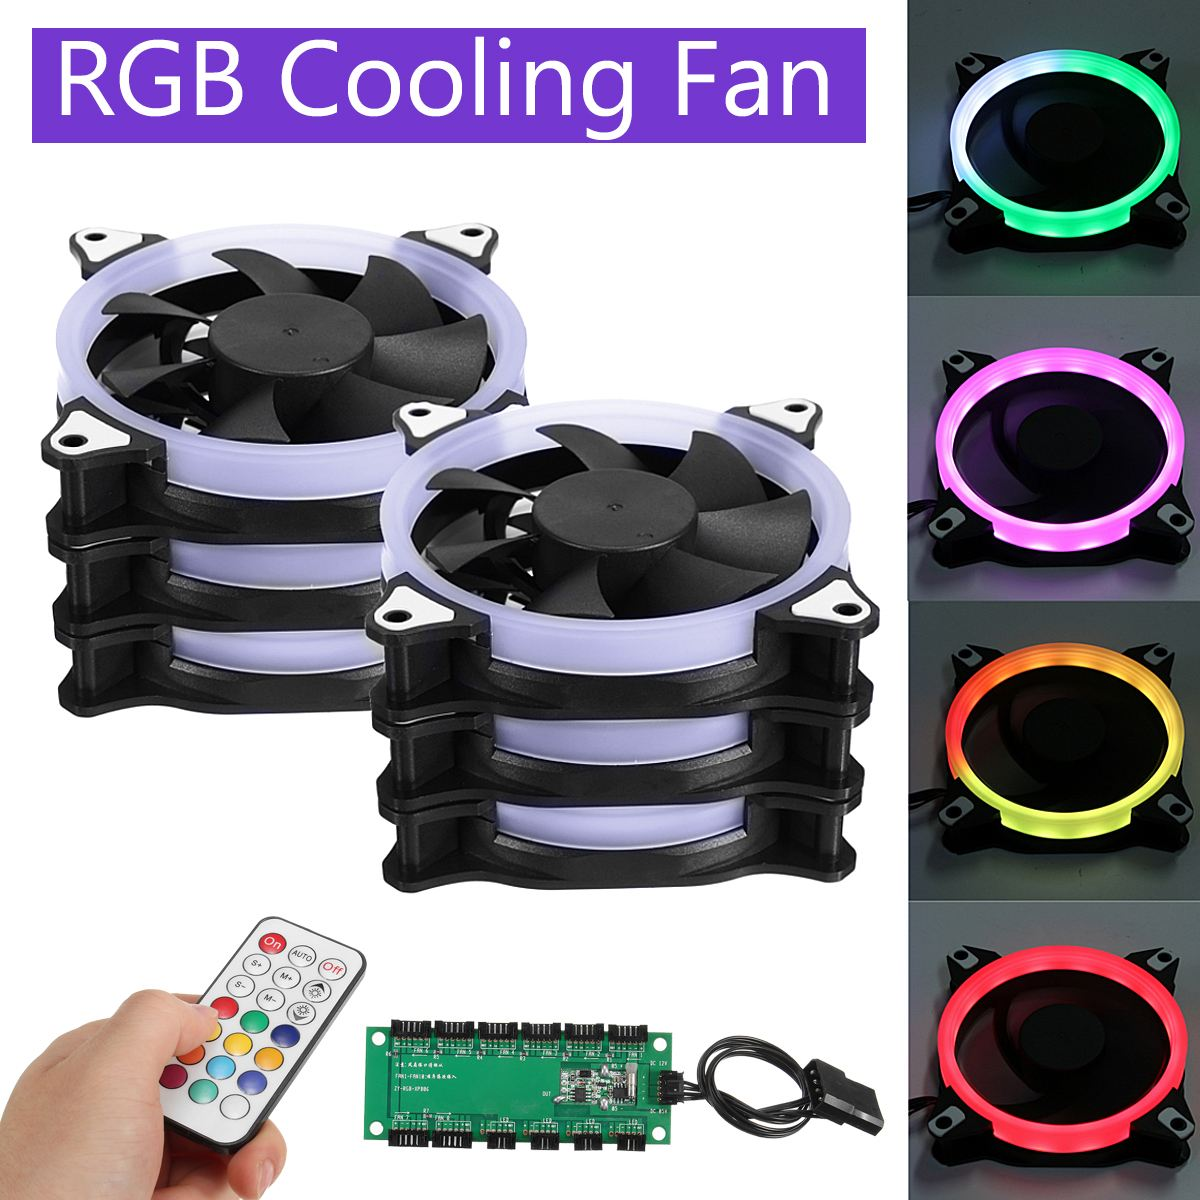 Hot 6pcs Computer Case PC Cooling Fan RGB Adjust LED 120mm Quiet + IR Remote New computer Cooler Cooling RGB Case Fan For CPU personal computer graphics cards fan cooler replacements fit for pc graphics cards cooling fan 12v 0 1a graphic fan